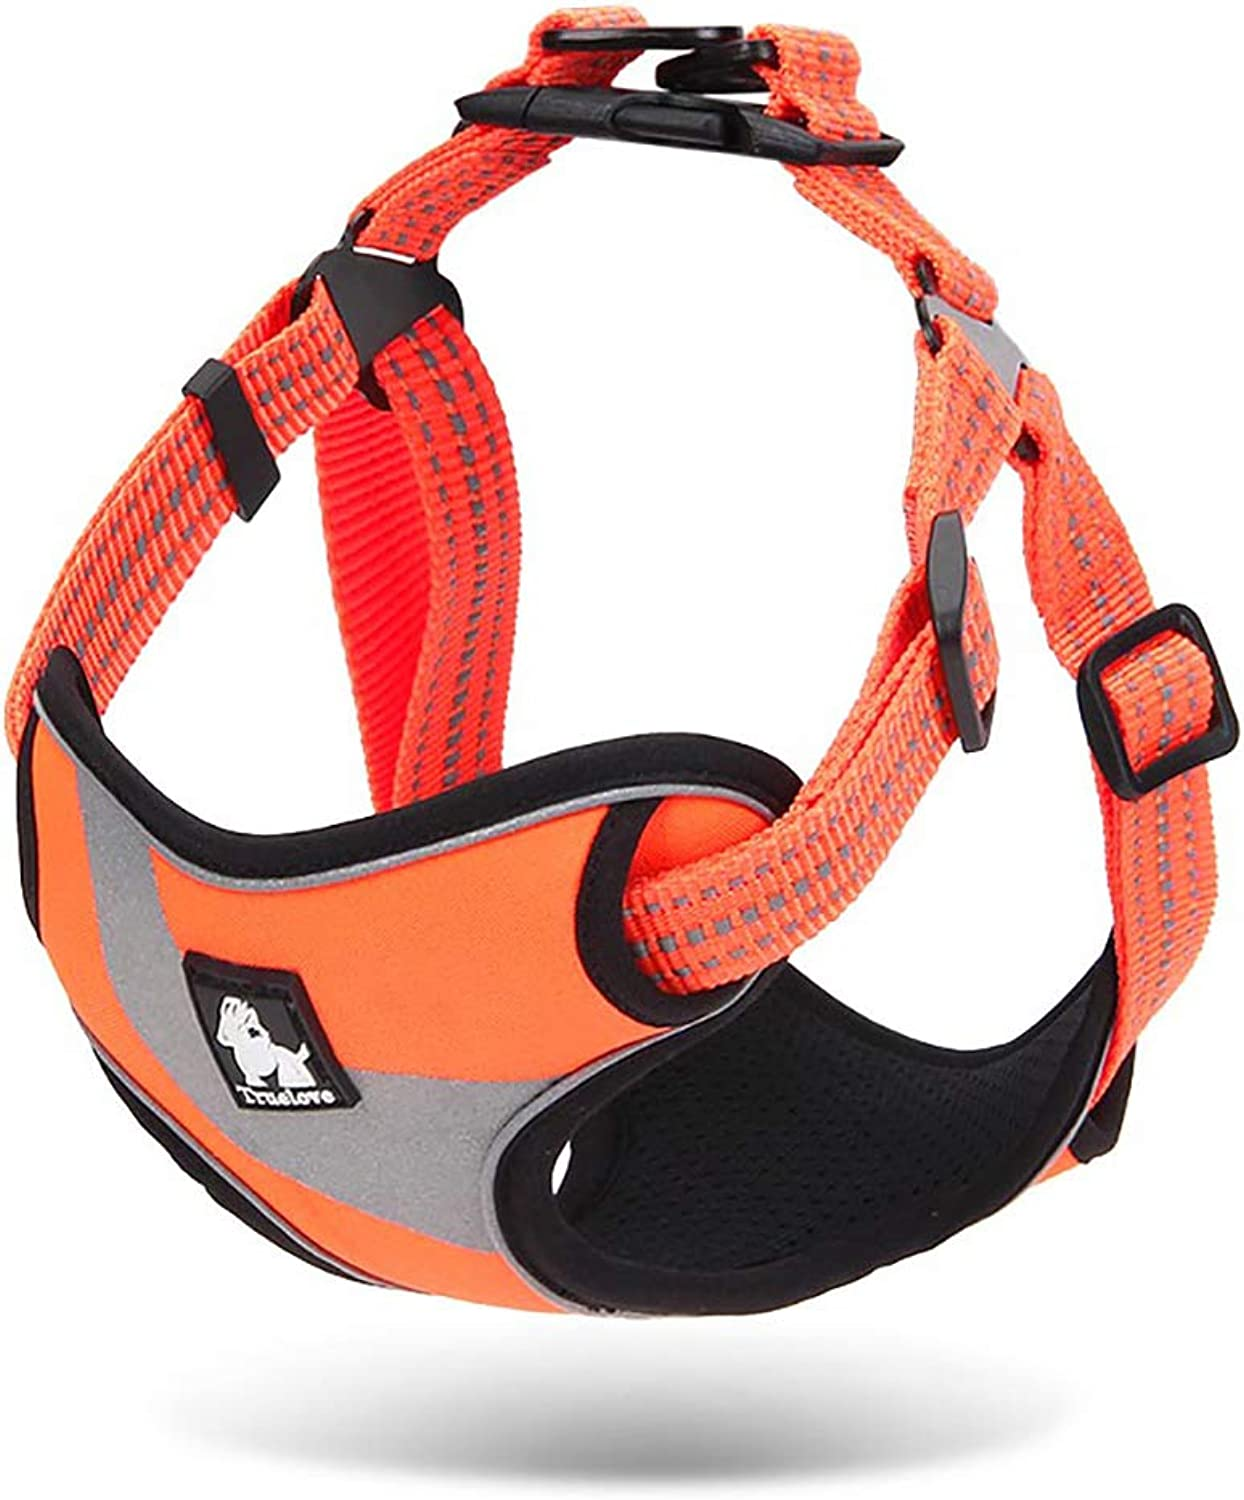 Dog Vest Harness,Adjustable No Oxford Material Dog Harness,Pet Reflective Quick Fit Mesh Vest for Dogs Easy Control for Small Medium Large Dogs,orange,S